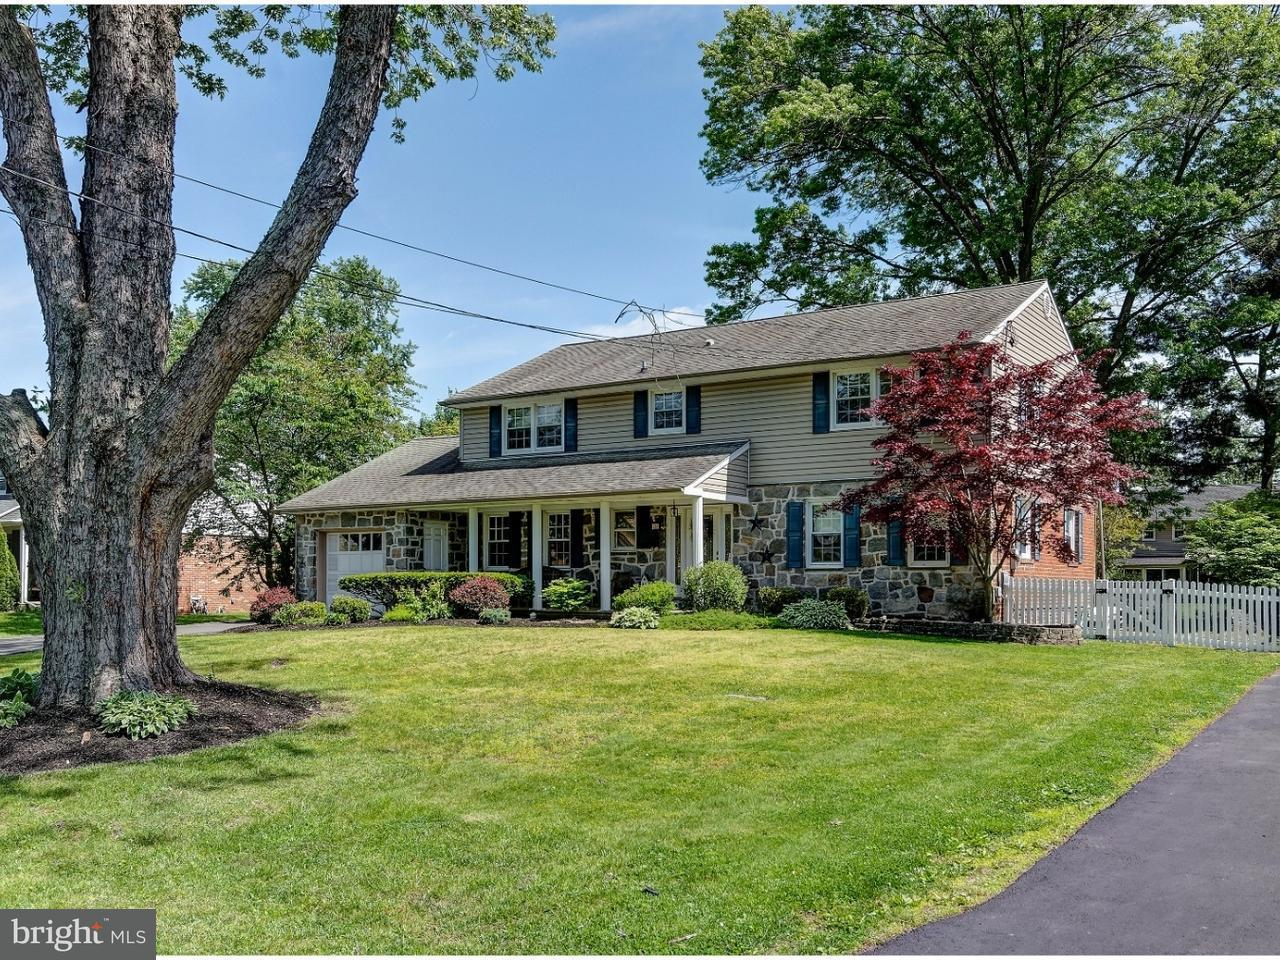 Single Family Home for Sale at 214 WAYNE Drive Cinnaminson, New Jersey 08077 United States